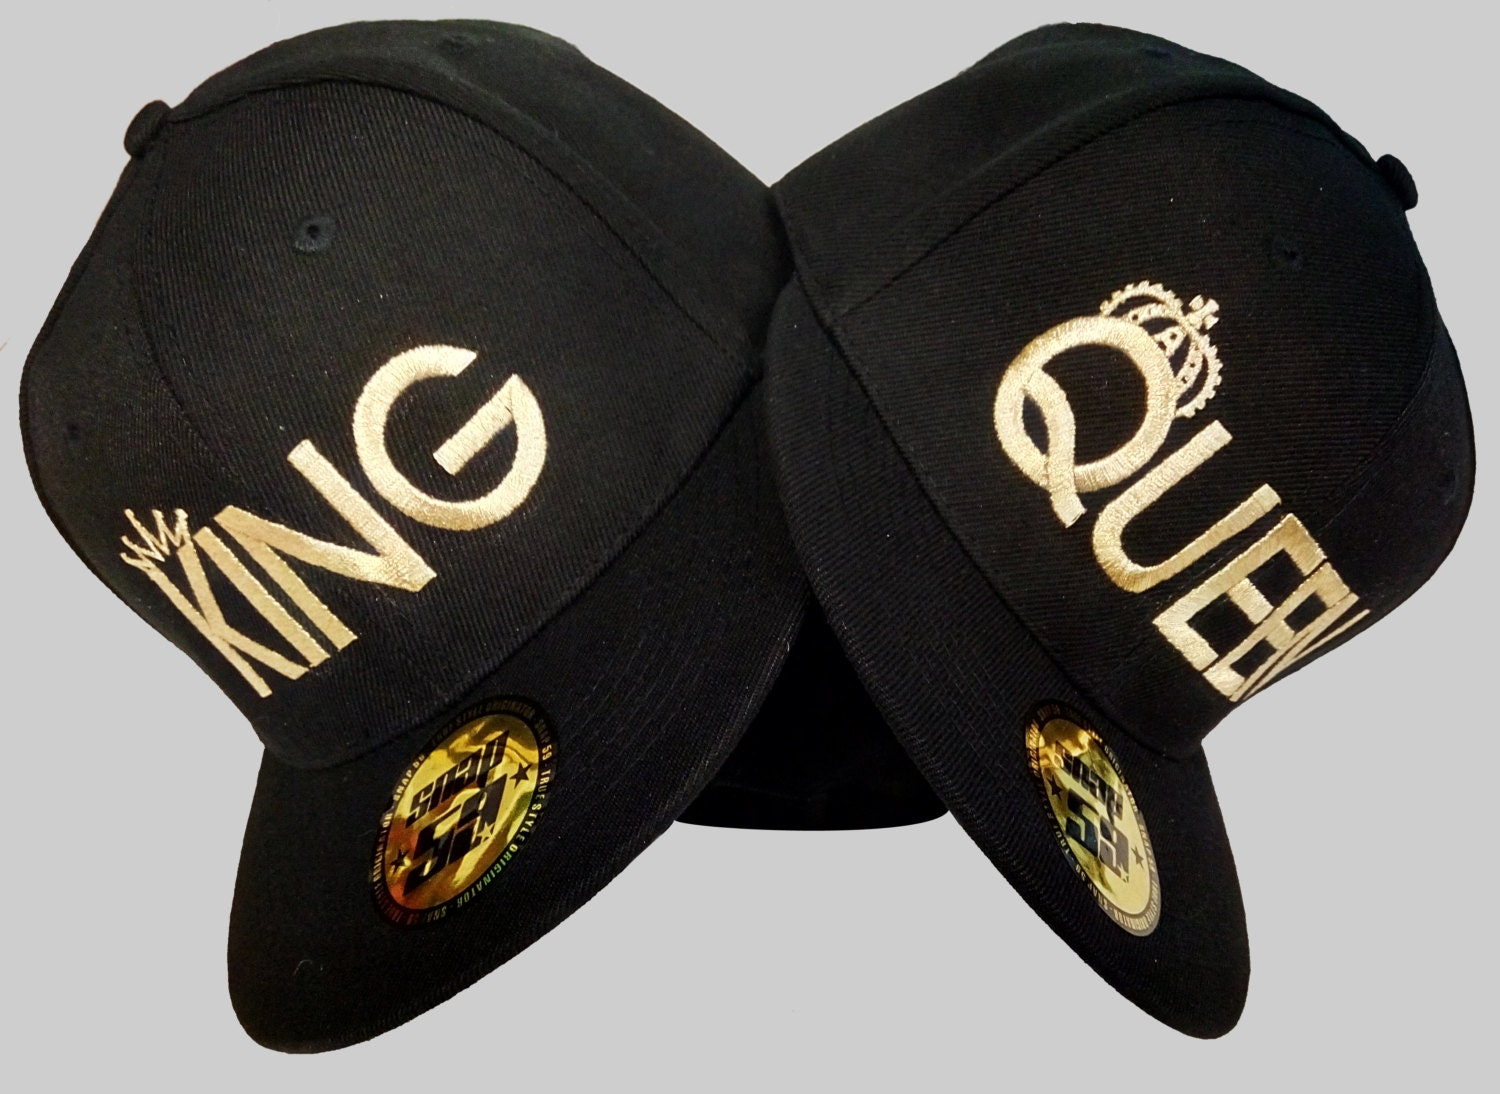 King Queen Hats Baseball Snapback Quality Custom Summer Caps, Hats For  Couples, Lovers And